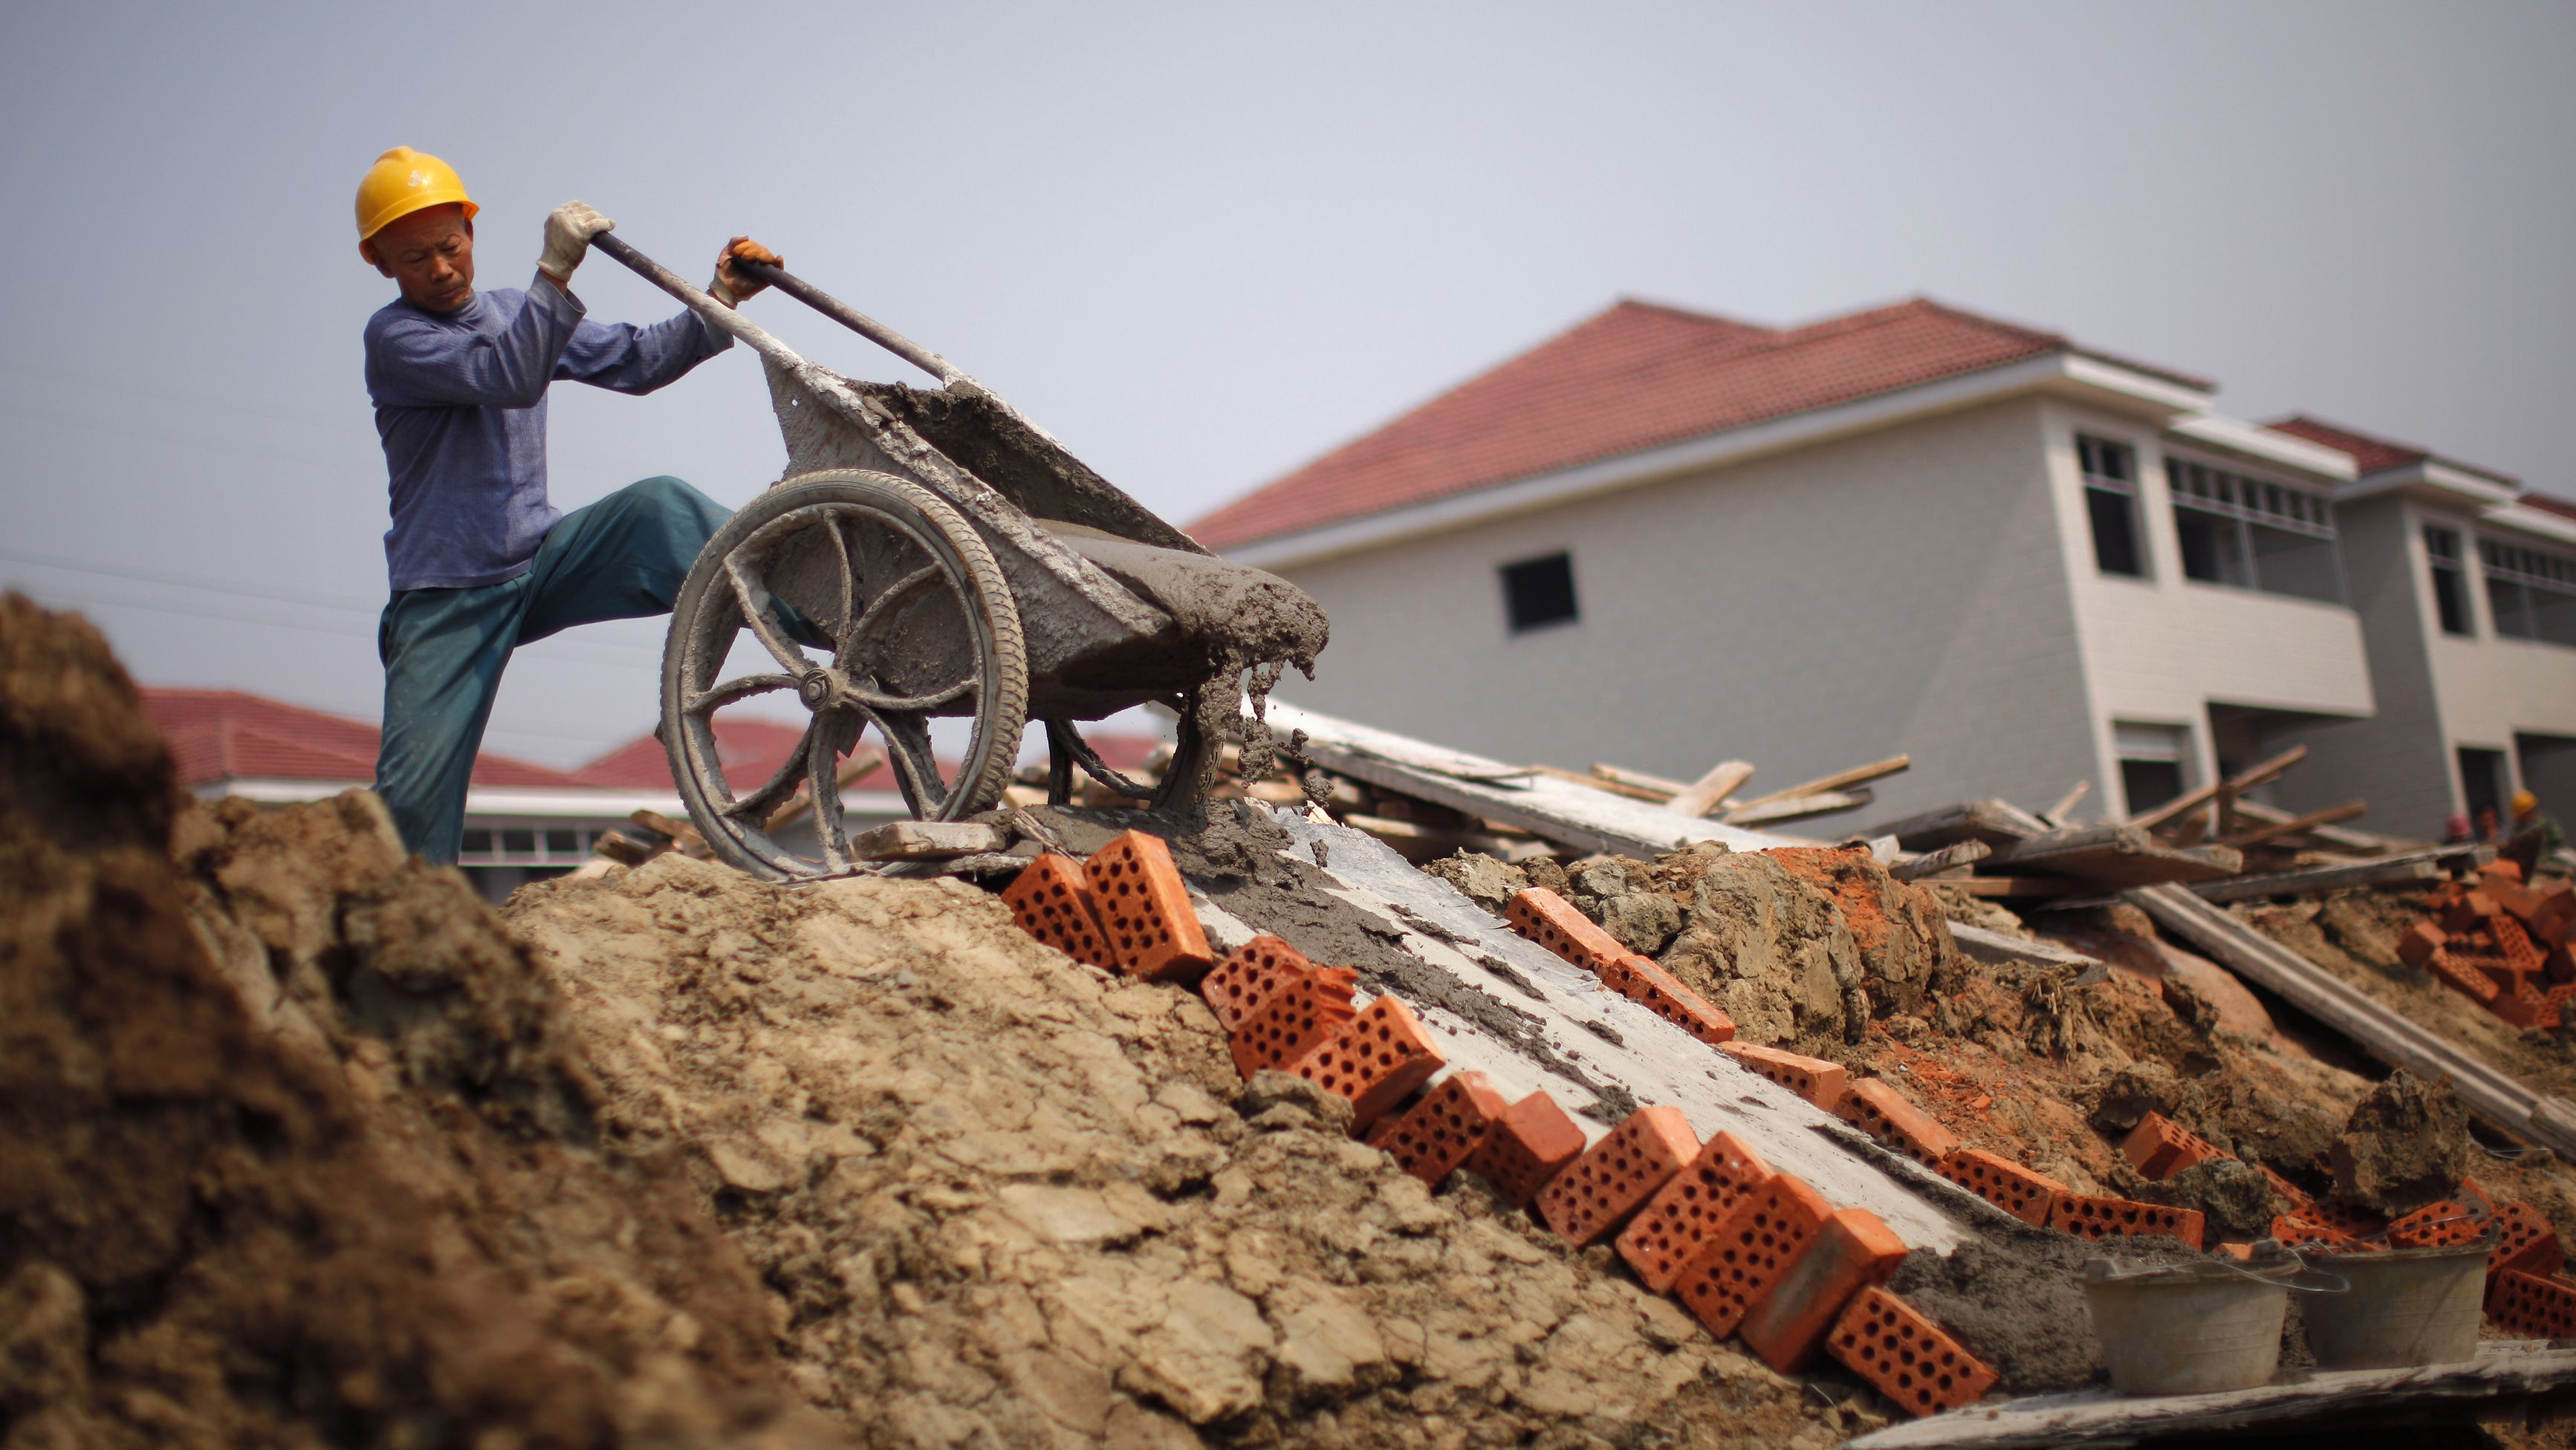 """A labourer pours cement at a construction site for new houses in Huaxi village, Jiangsu province October 8, 2011. As housing bubbles go, China's looks relatively benign. Unlike in the United States, Chinese home buyers typically put down at least 40 percent of the purchase price. That means they don't have to worry about a modest decline wiping out all their equity, and banks have little reason to fear an influx of """"jingle mail"""" from defaulting homeowners returning the keys. To match Insight ECONOMY-CHINA/PROPERTY REUTERS/Carlos Barria (CHINA - Tags: BUSINESS REAL ESTATE EMPLOYMENT CONSTRUCTION)"""